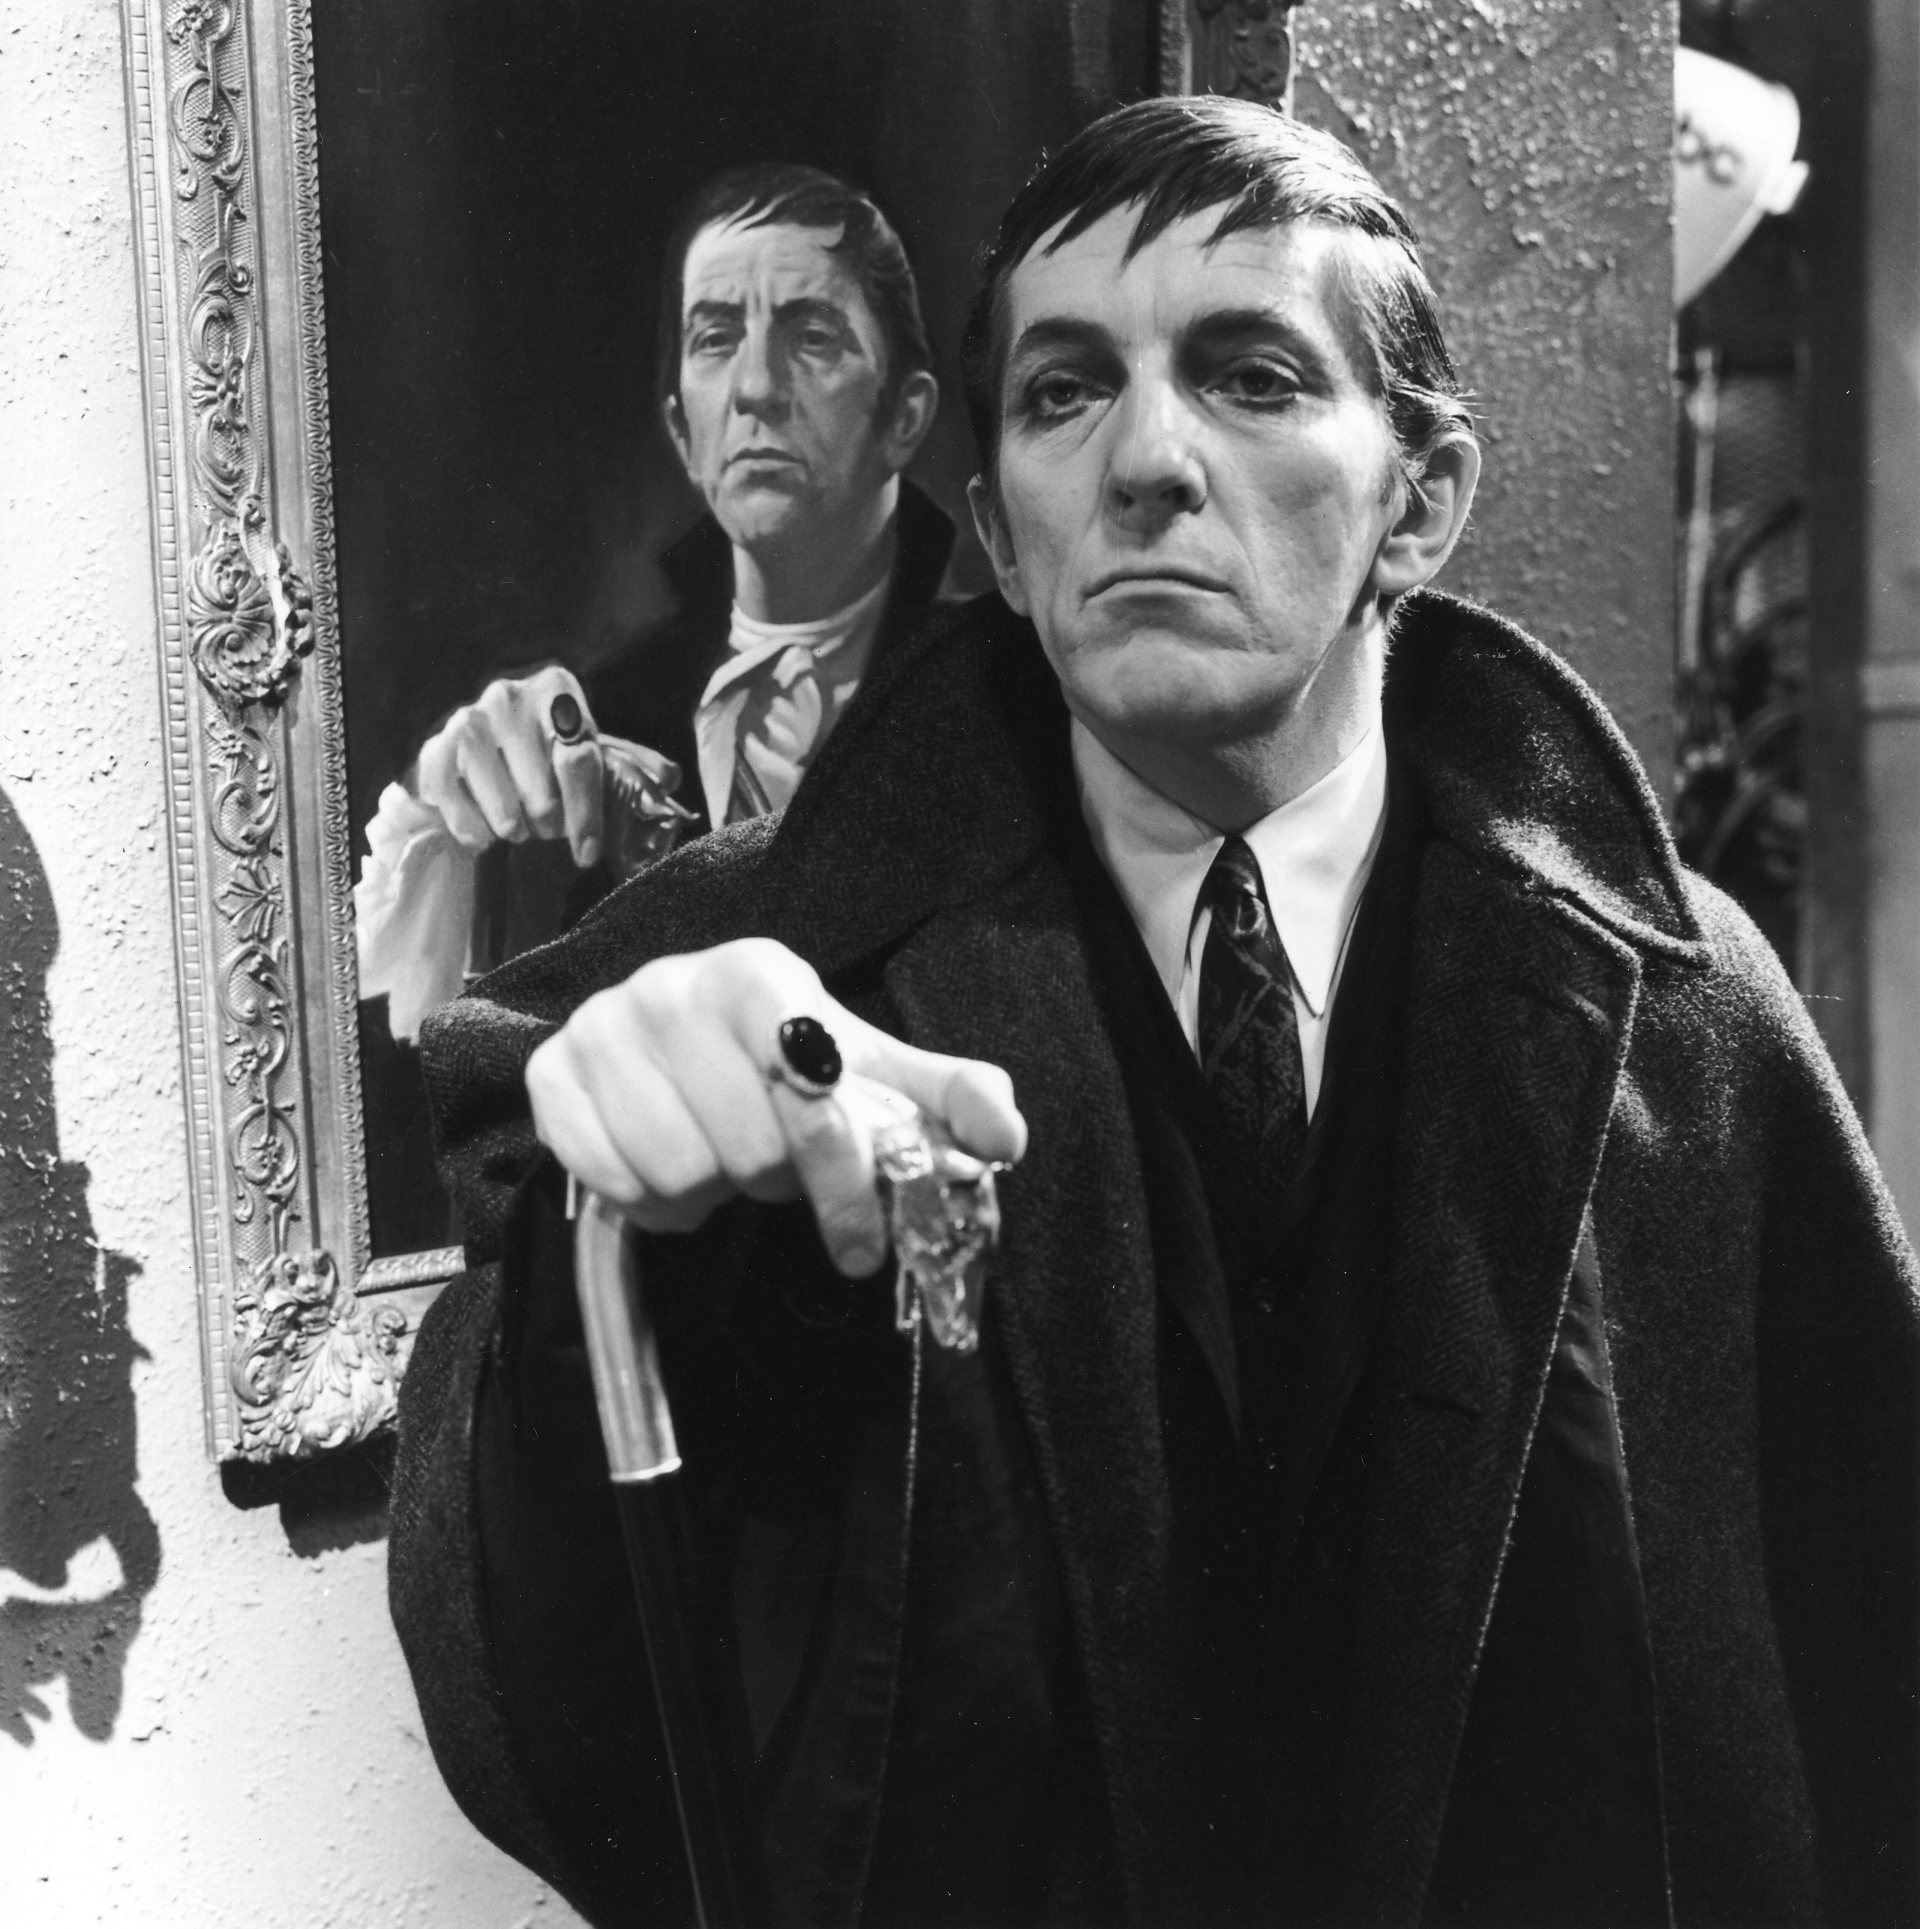 Dark Shadows - Barnabas and Portrait